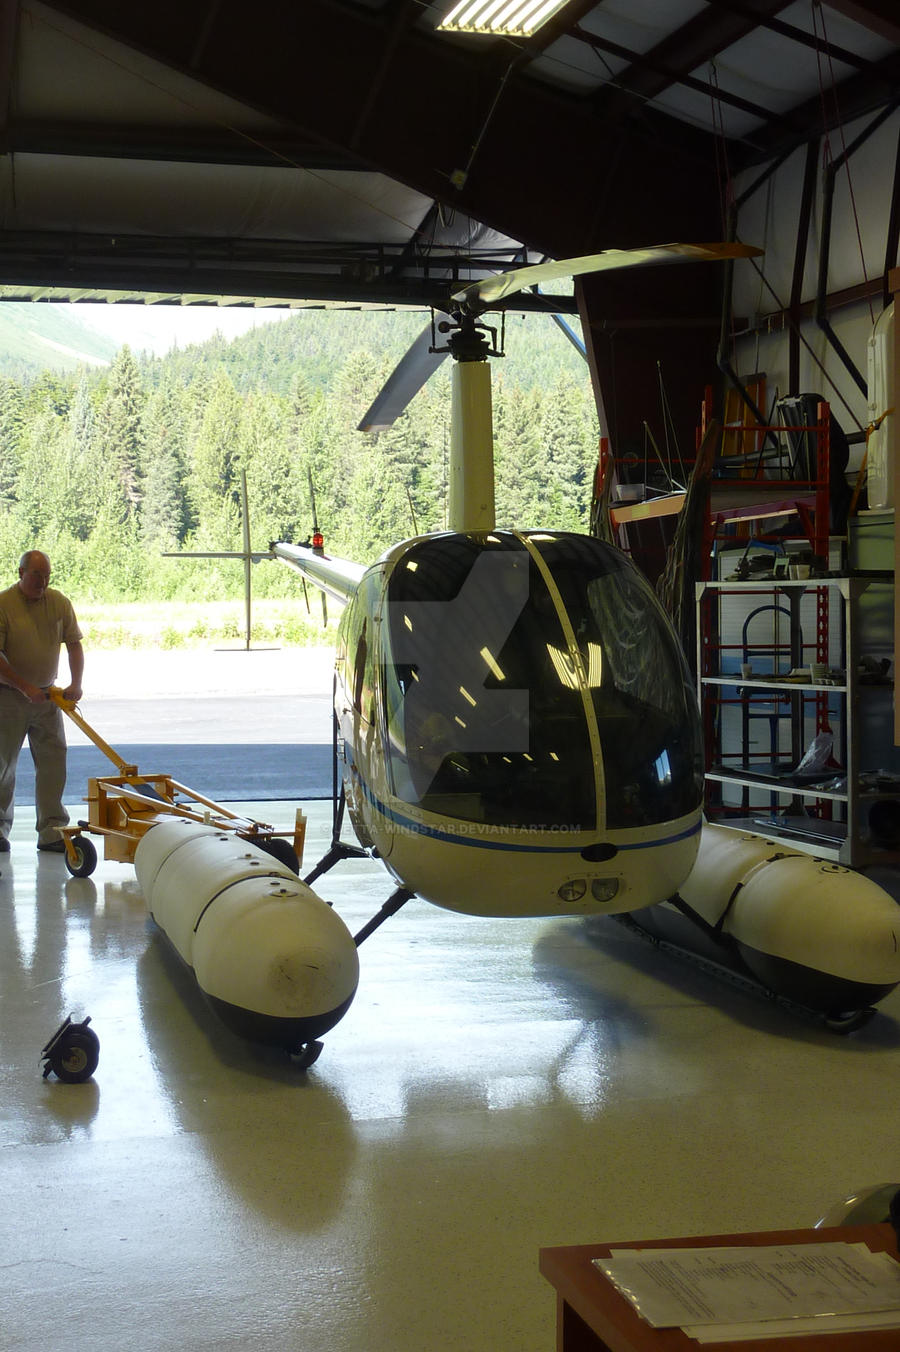 R22 with floats by Jetta-Windstar